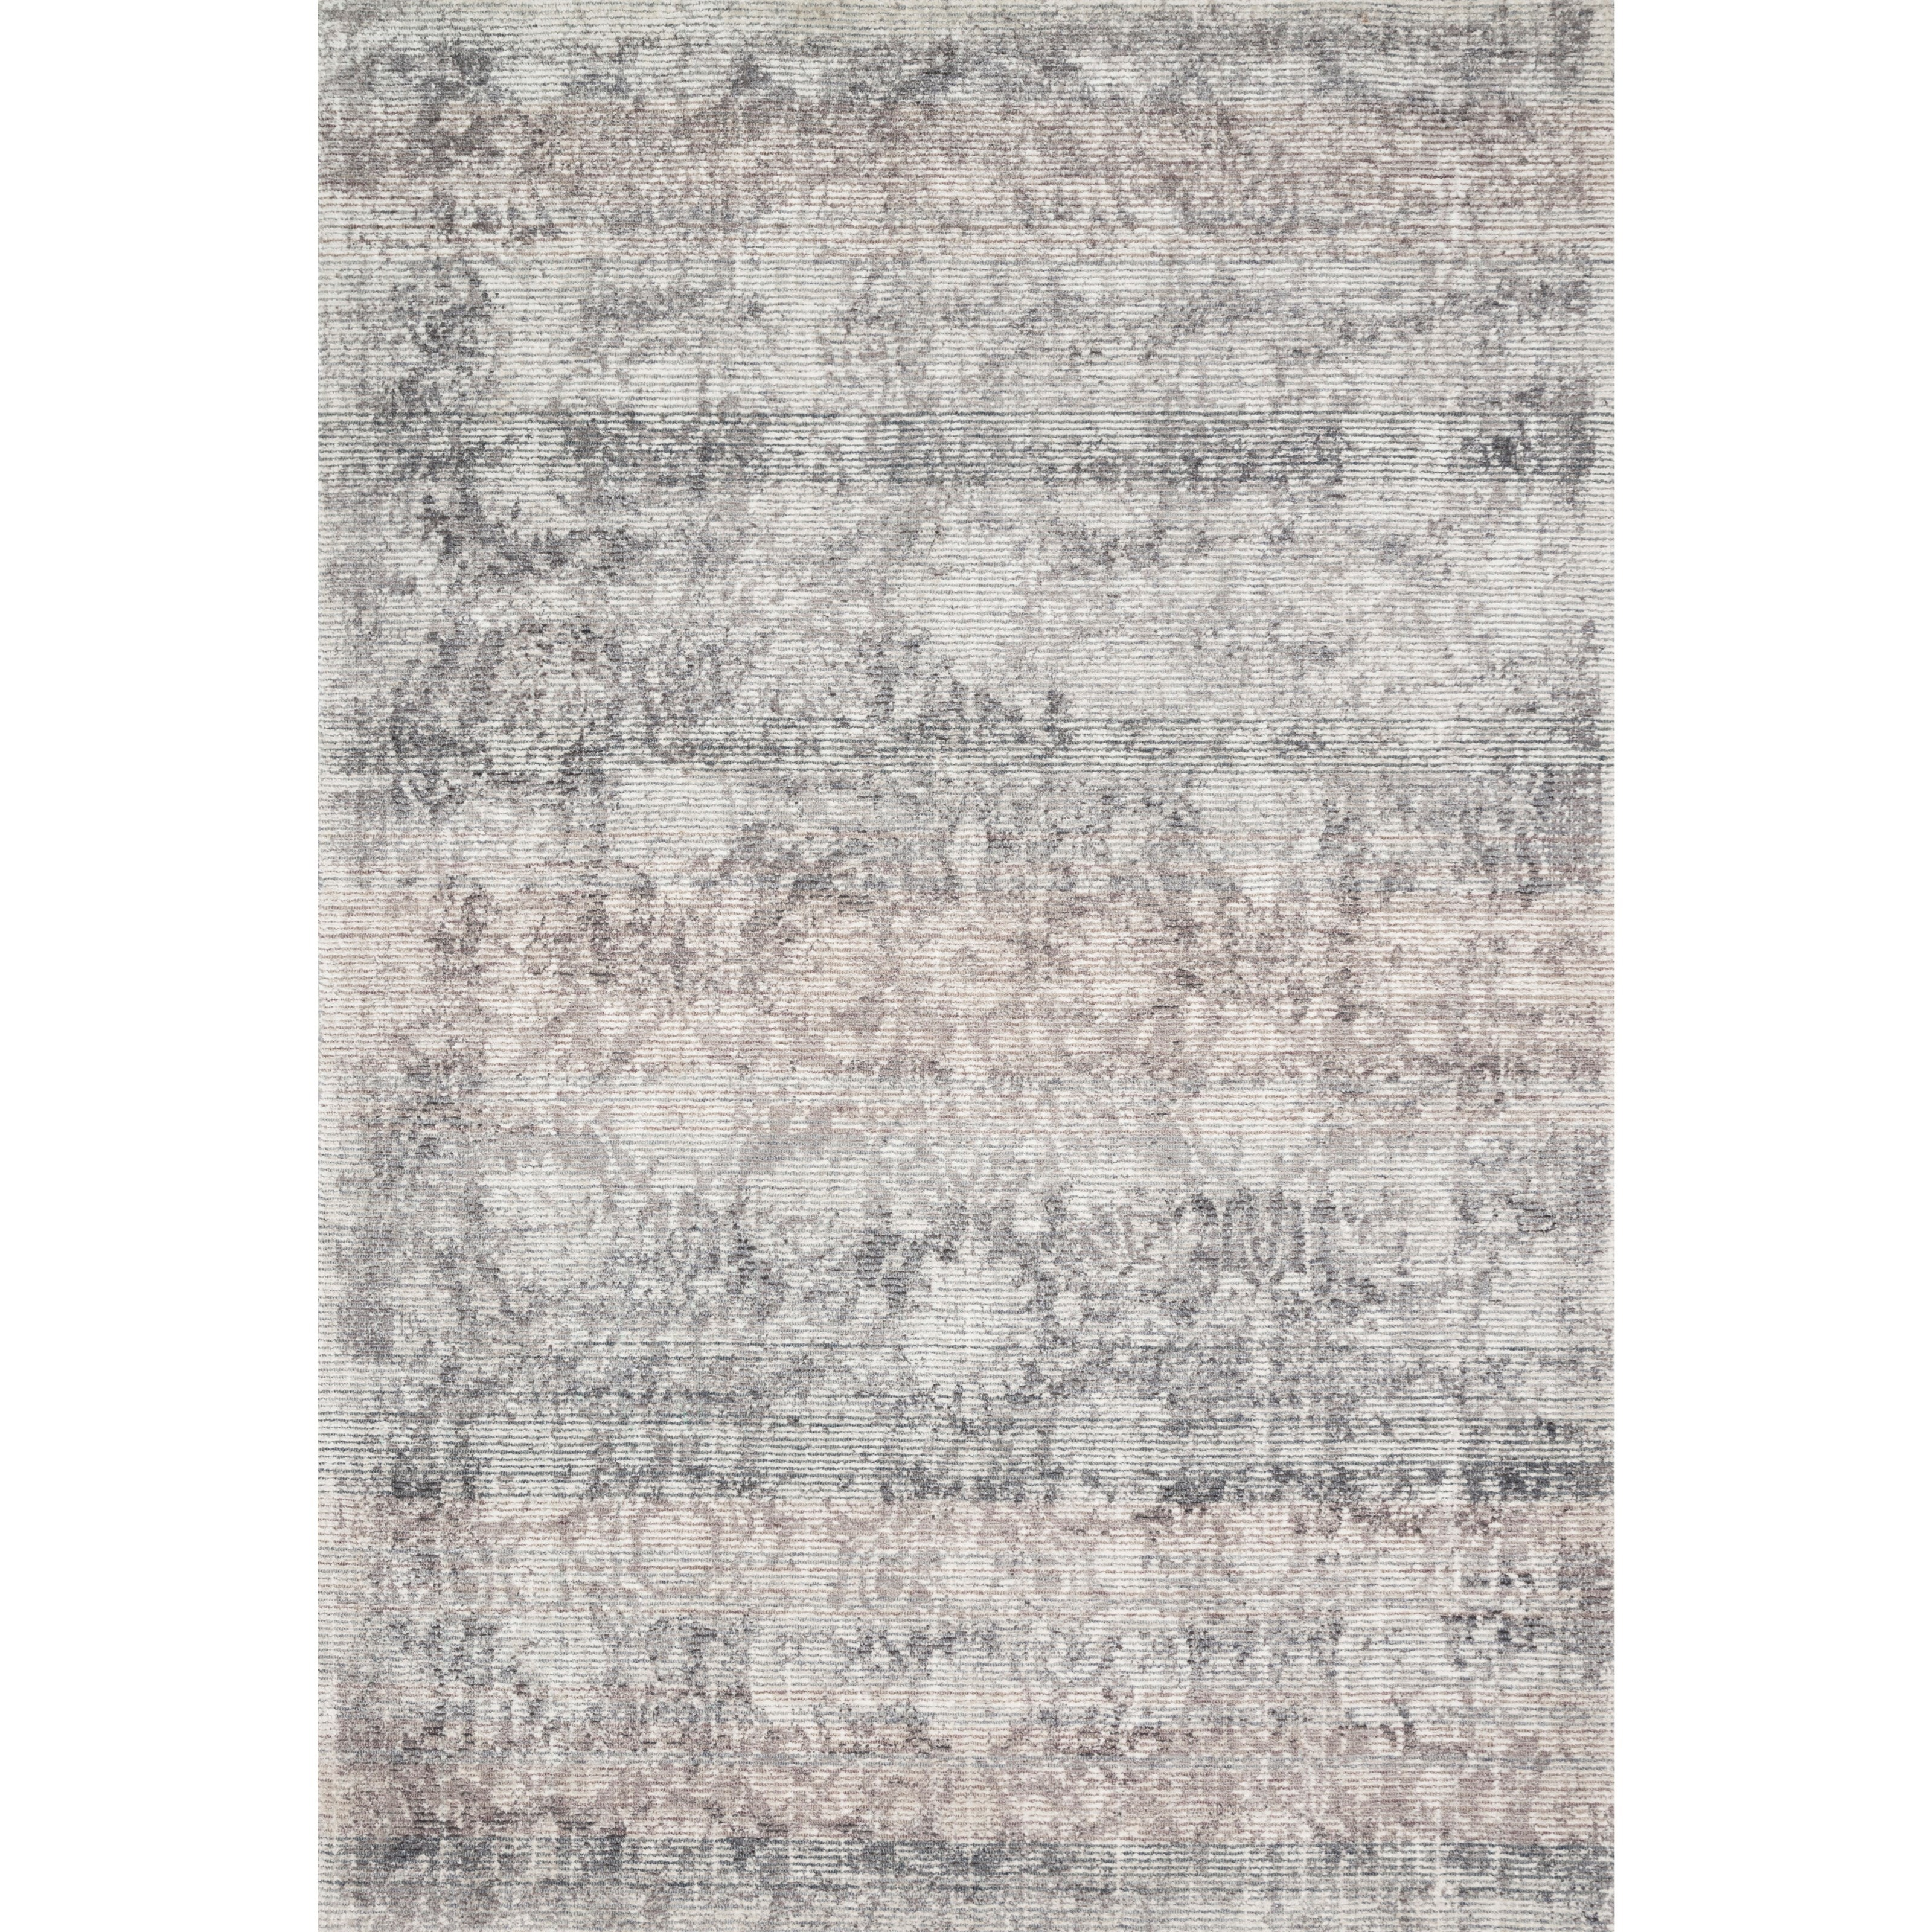 """Rumi 7'9"""" x 9'9"""" Pewter Rug by Loloi Rugs at Virginia Furniture Market"""